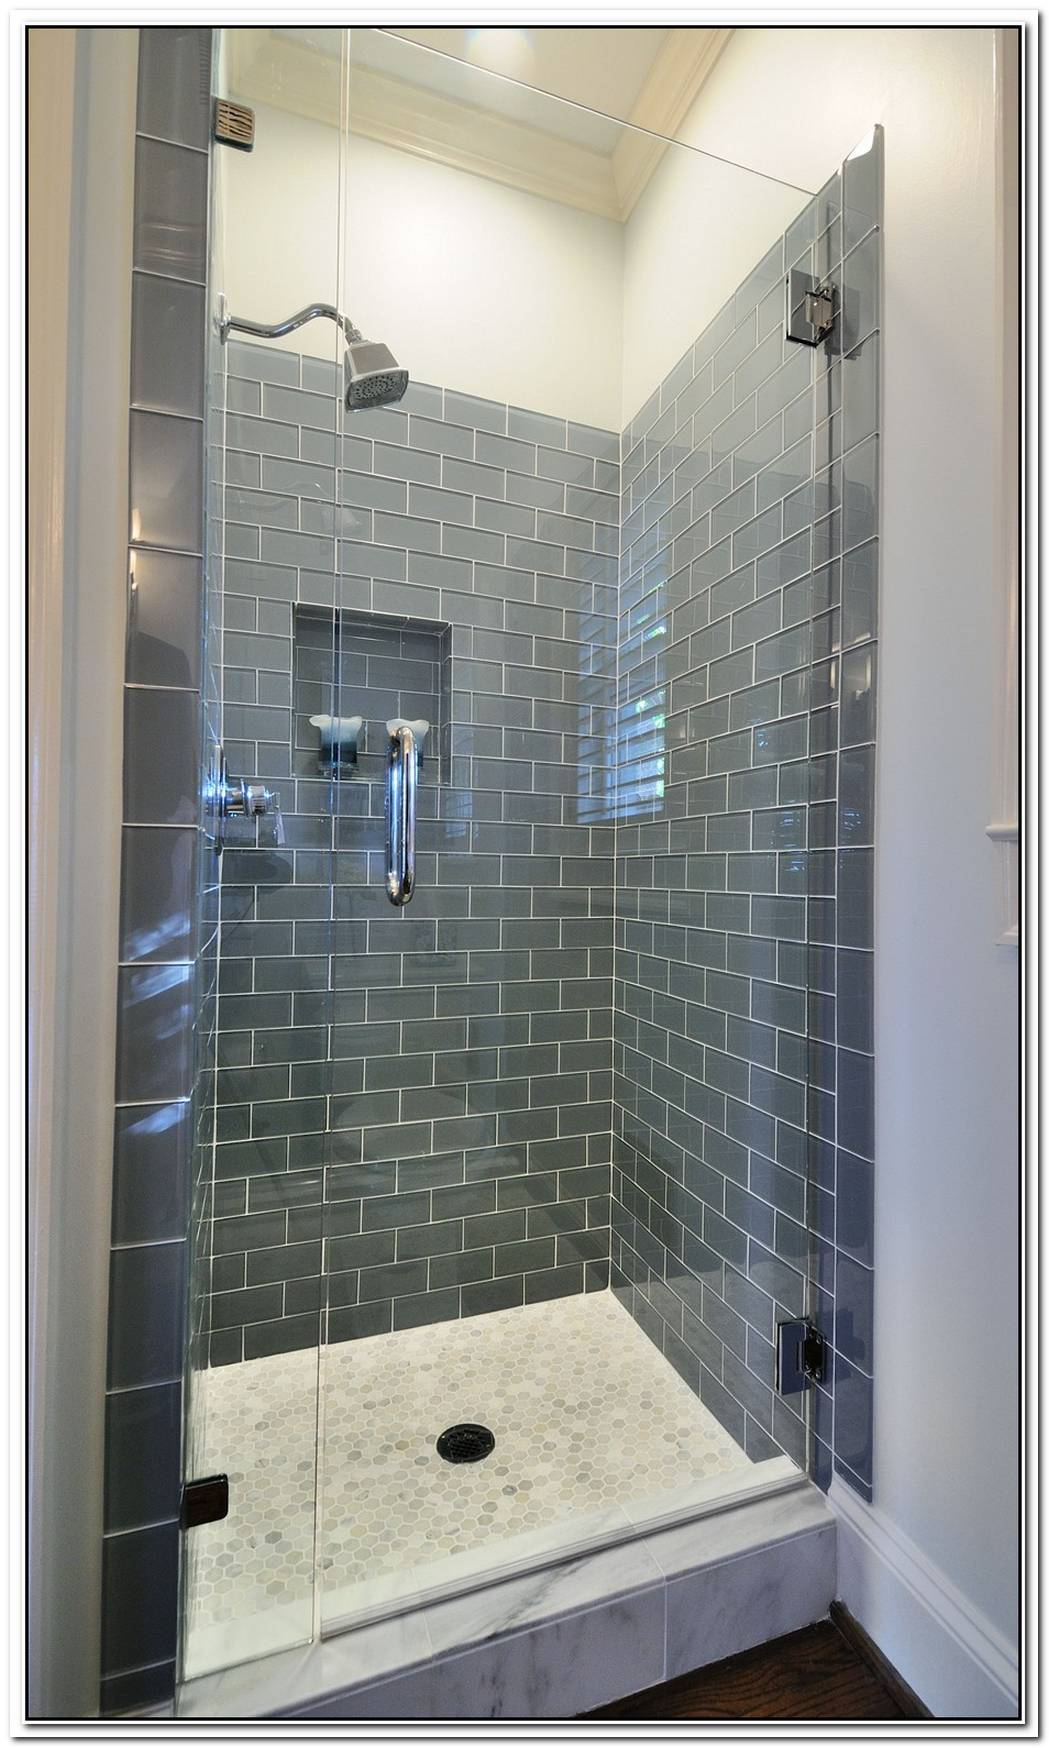 Instead Bathroom Glass Tile